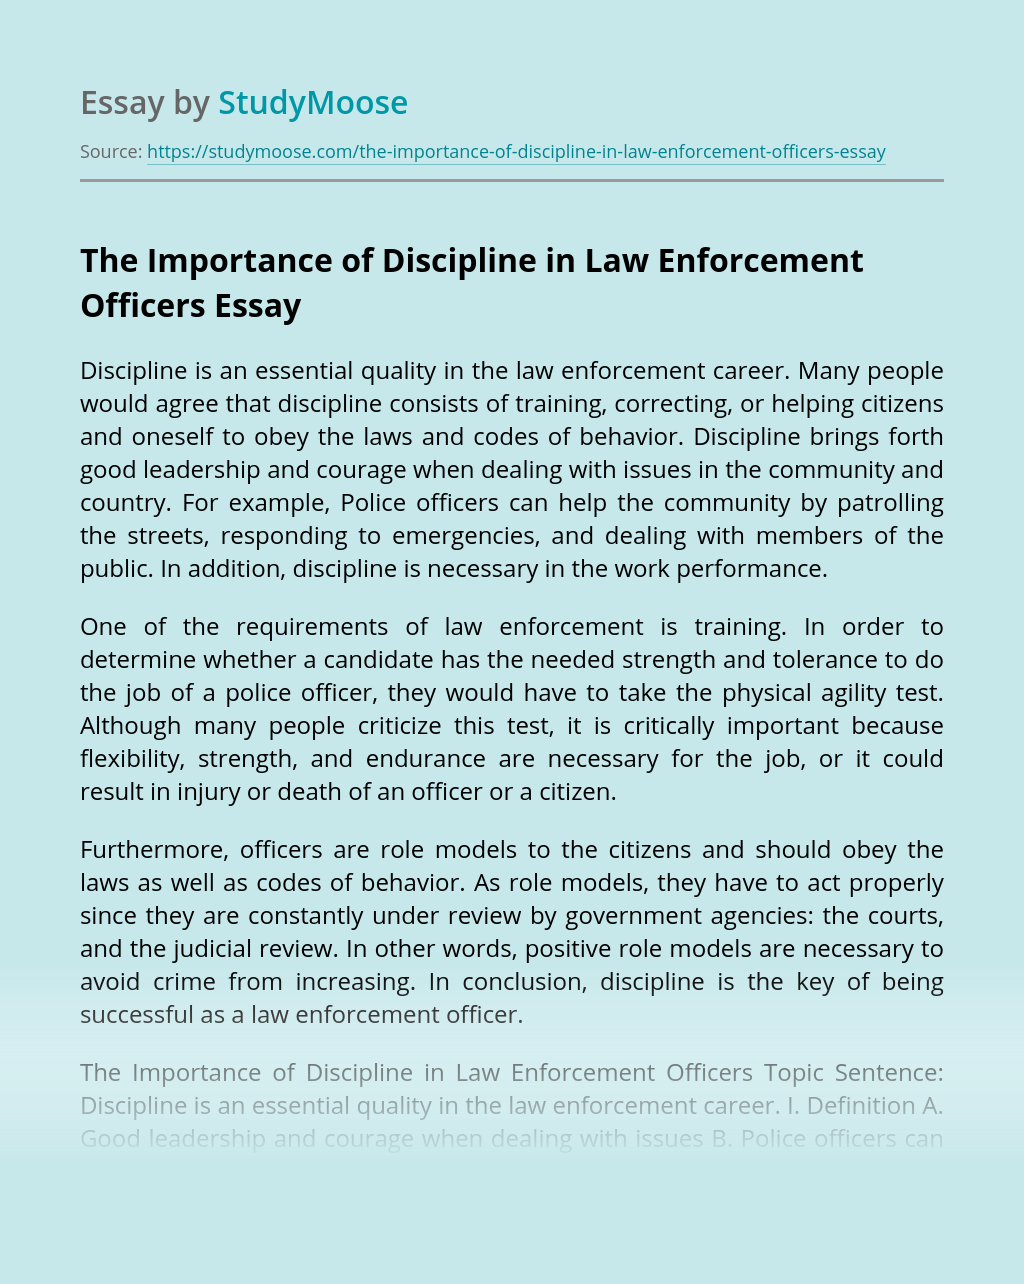 The Importance of Discipline in Law Enforcement Officers